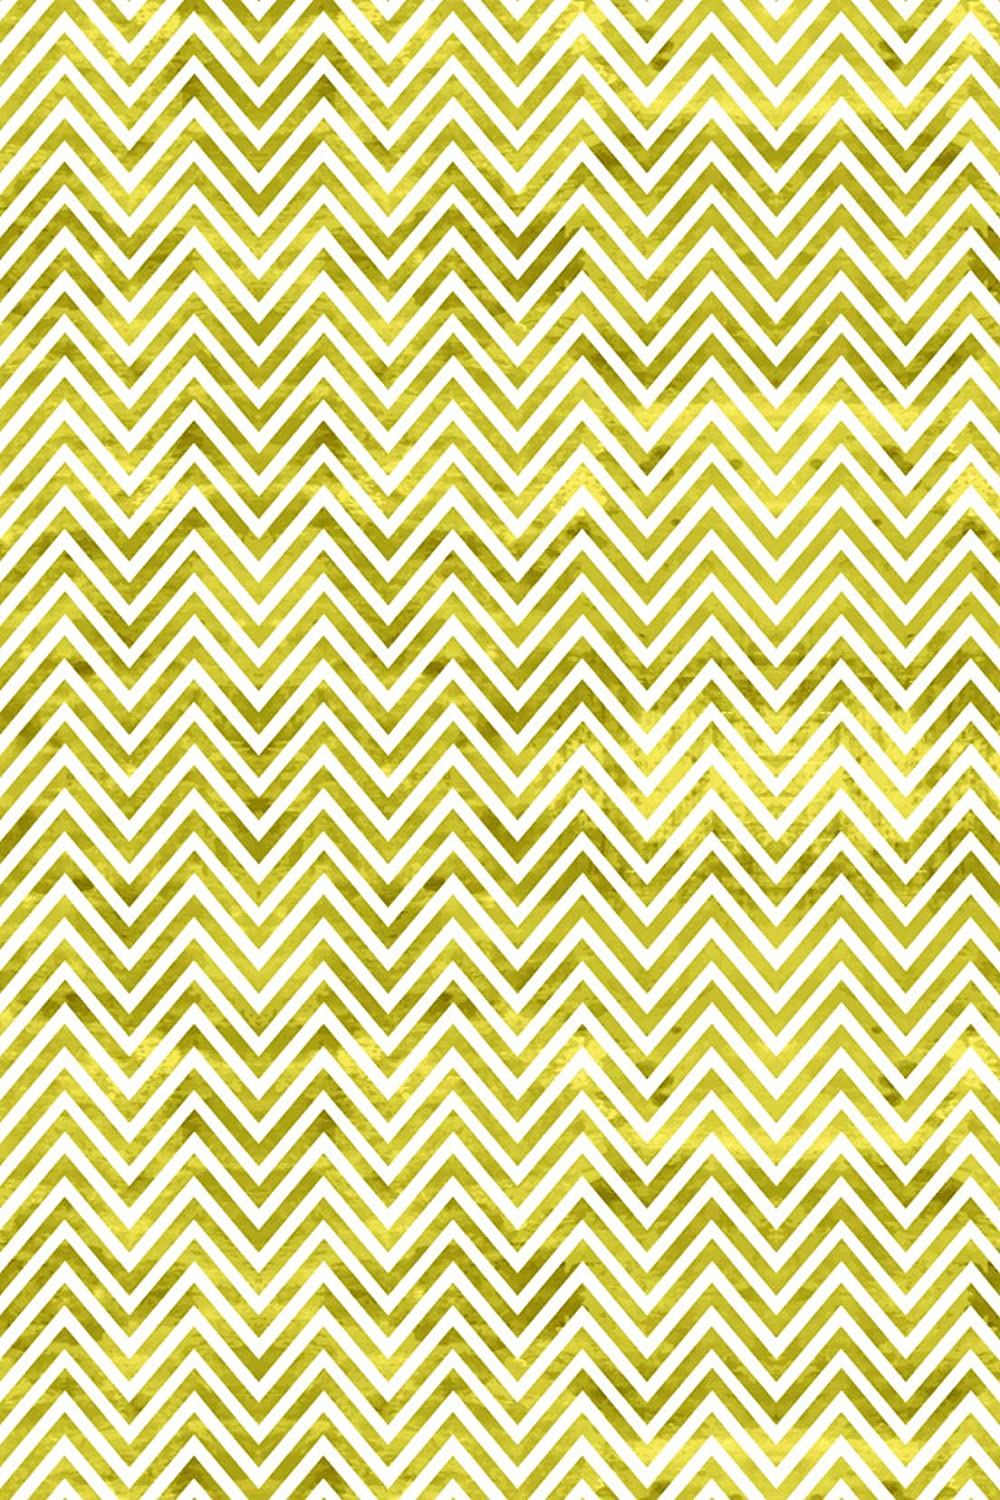 Gold Color Chevron Pattern with Rustic Accent Grunge Heat Transfer Vinyl Sheet for Silhouette 12